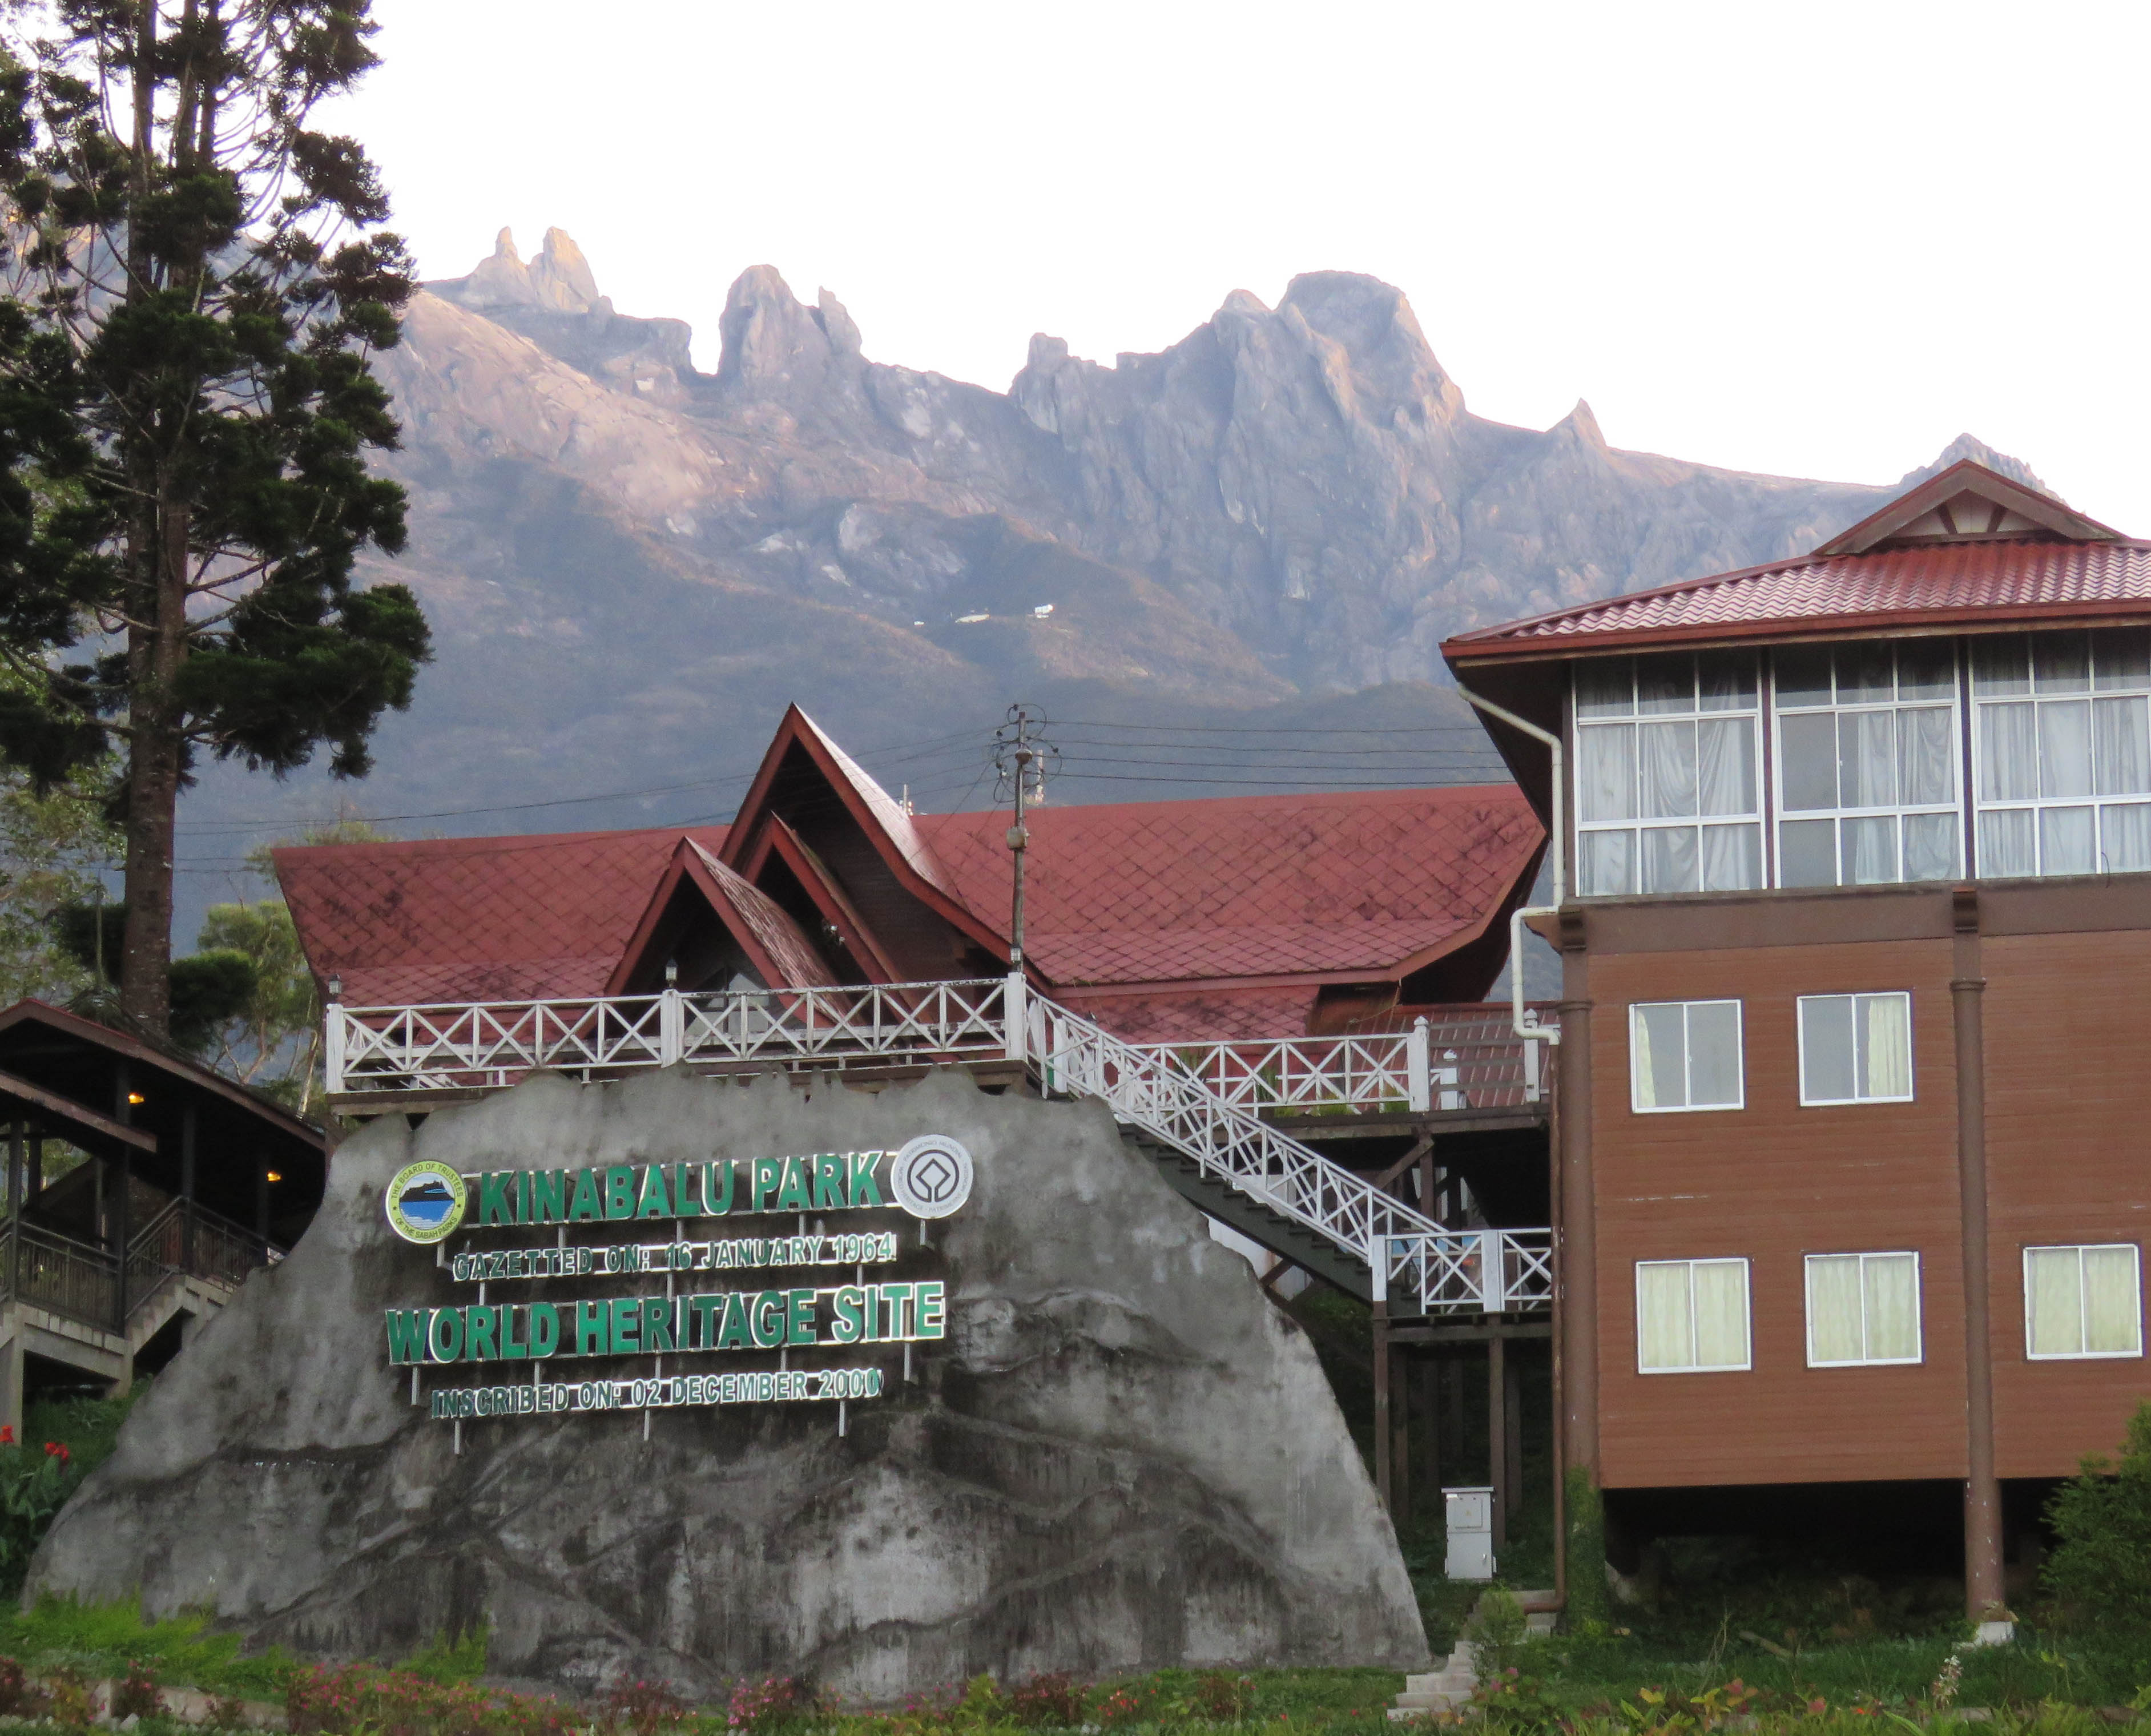 Mt Kinabalu Park Entrance. Photo by Randy Weisser.